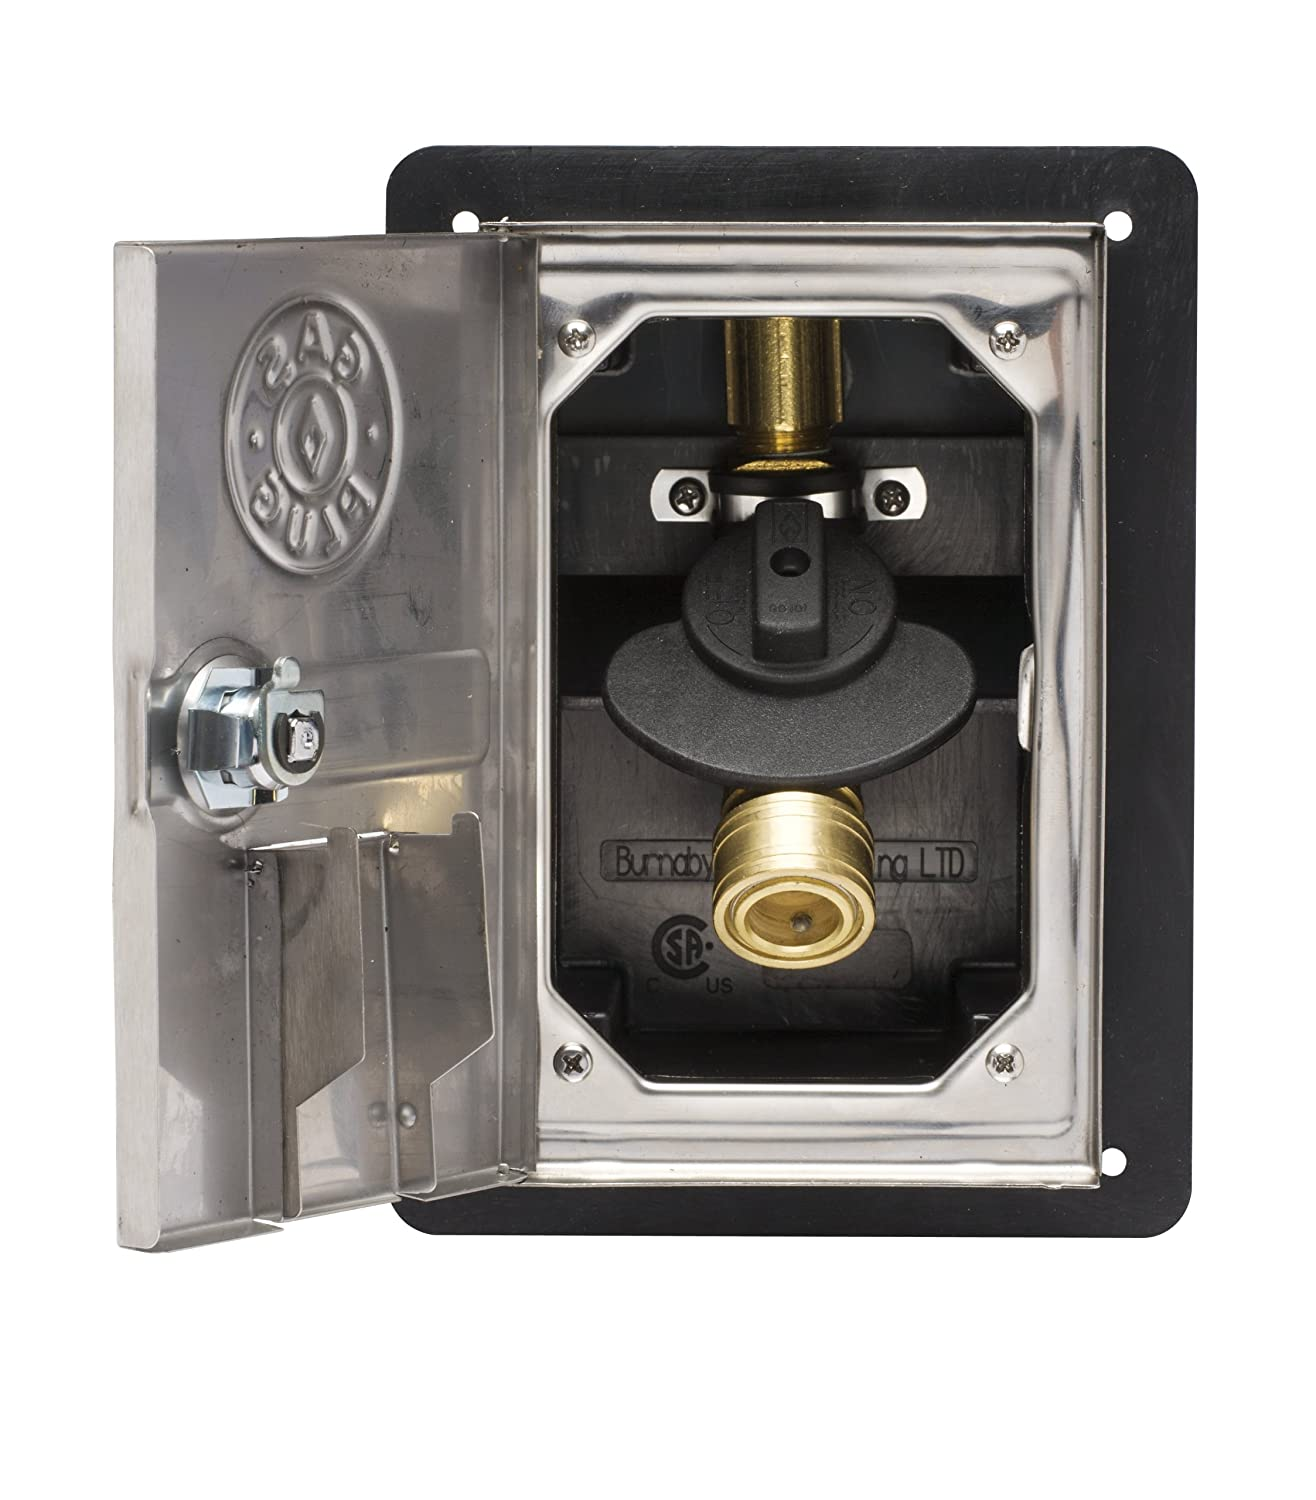 Burnaby Manufacturing Ltd GR0101-SS-50 Gas Plug Recessed Gas Outlet Box with 1/2-Inch Inlet, 3/8-Inch Outlet, Black PVC Enclosure and Stainless Steel Lockable Door